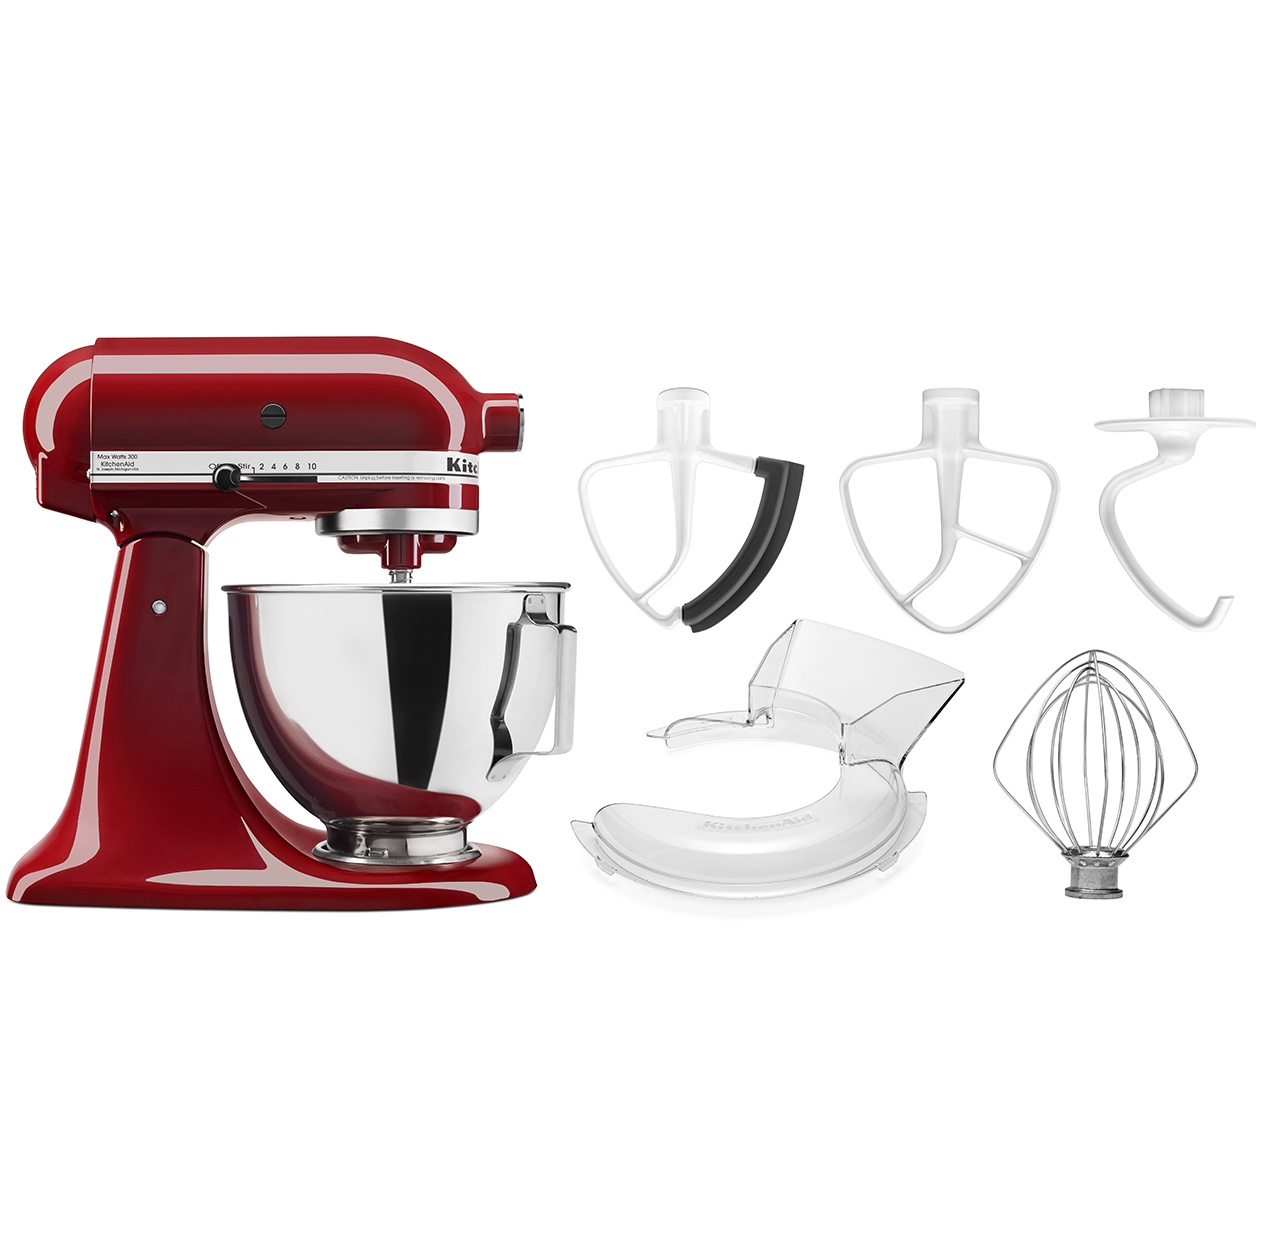 NEW-KitchenAid-4-5-quart-Tilt-Head-Stand-Mixer-w-bowl-with-handle